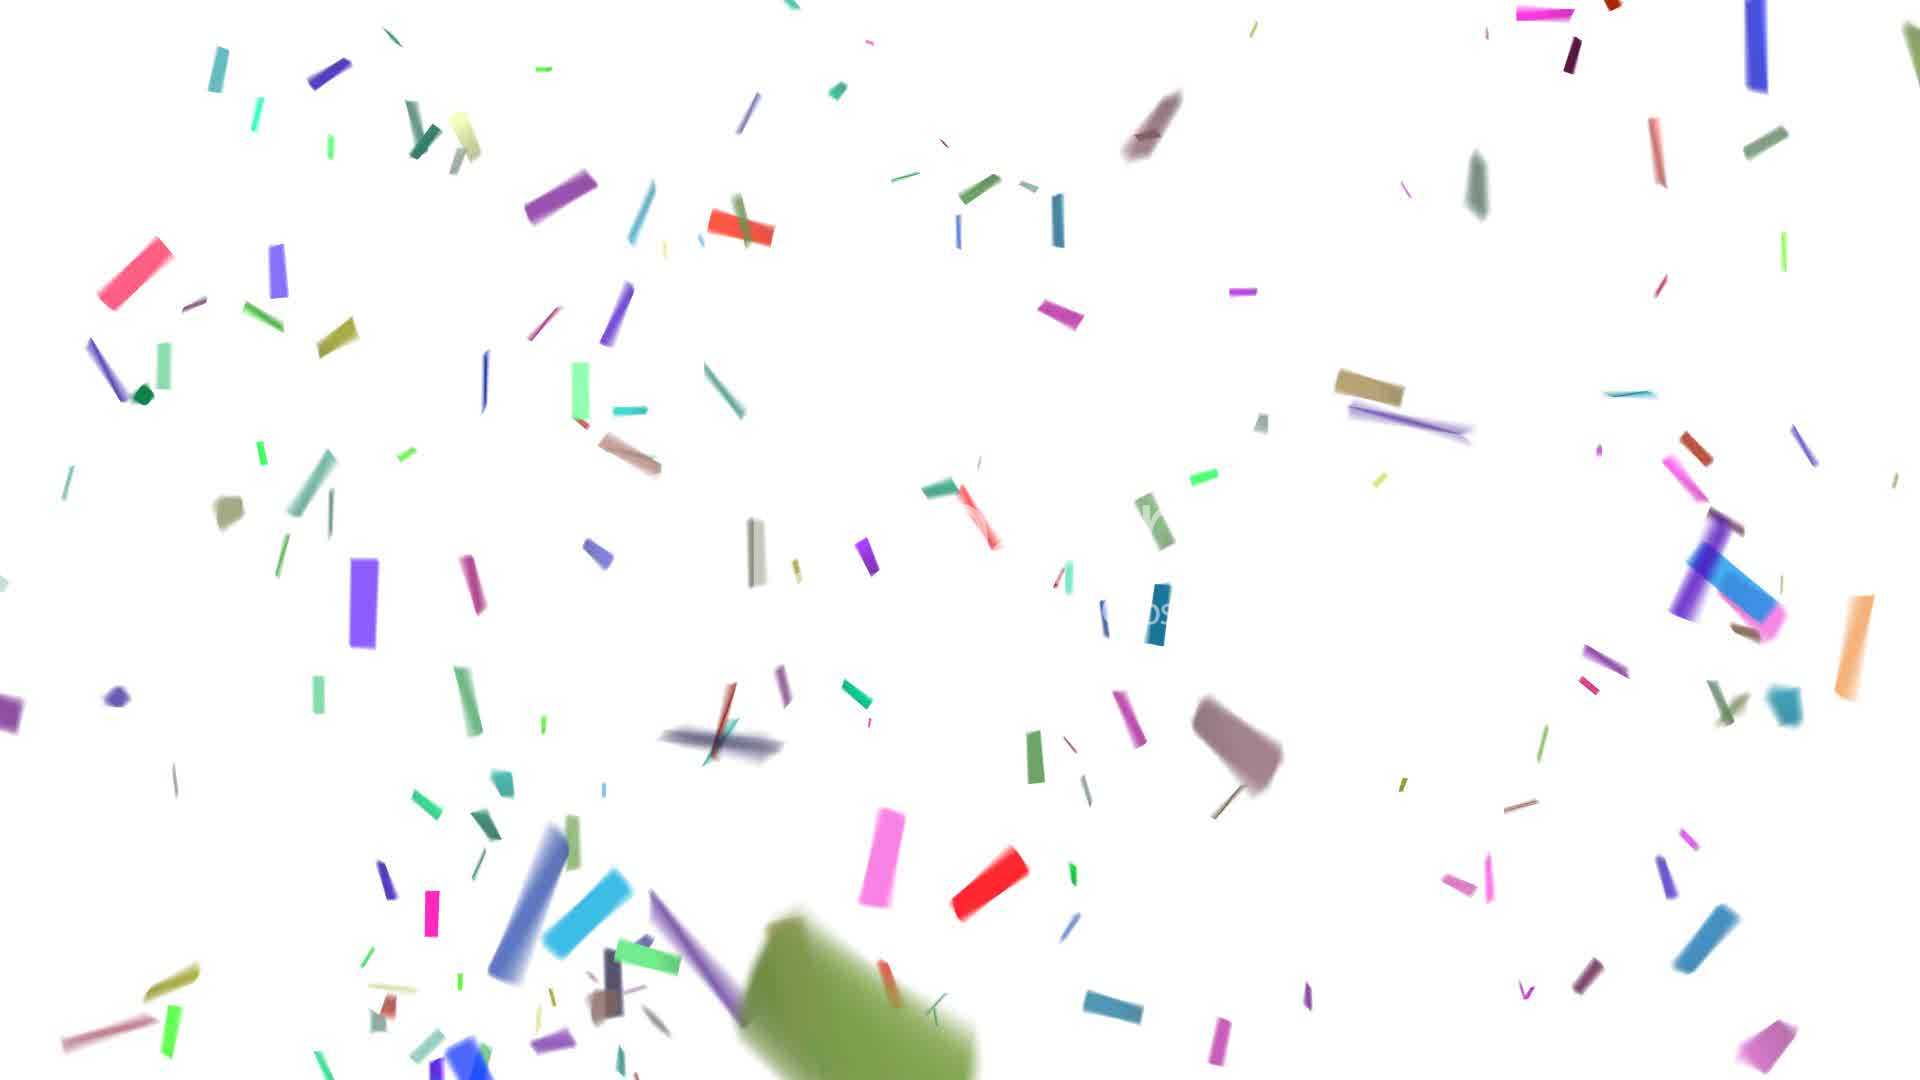 Animated Fall Wallpaper Confetti With Alpha Royalty Free Video And Stock Footage